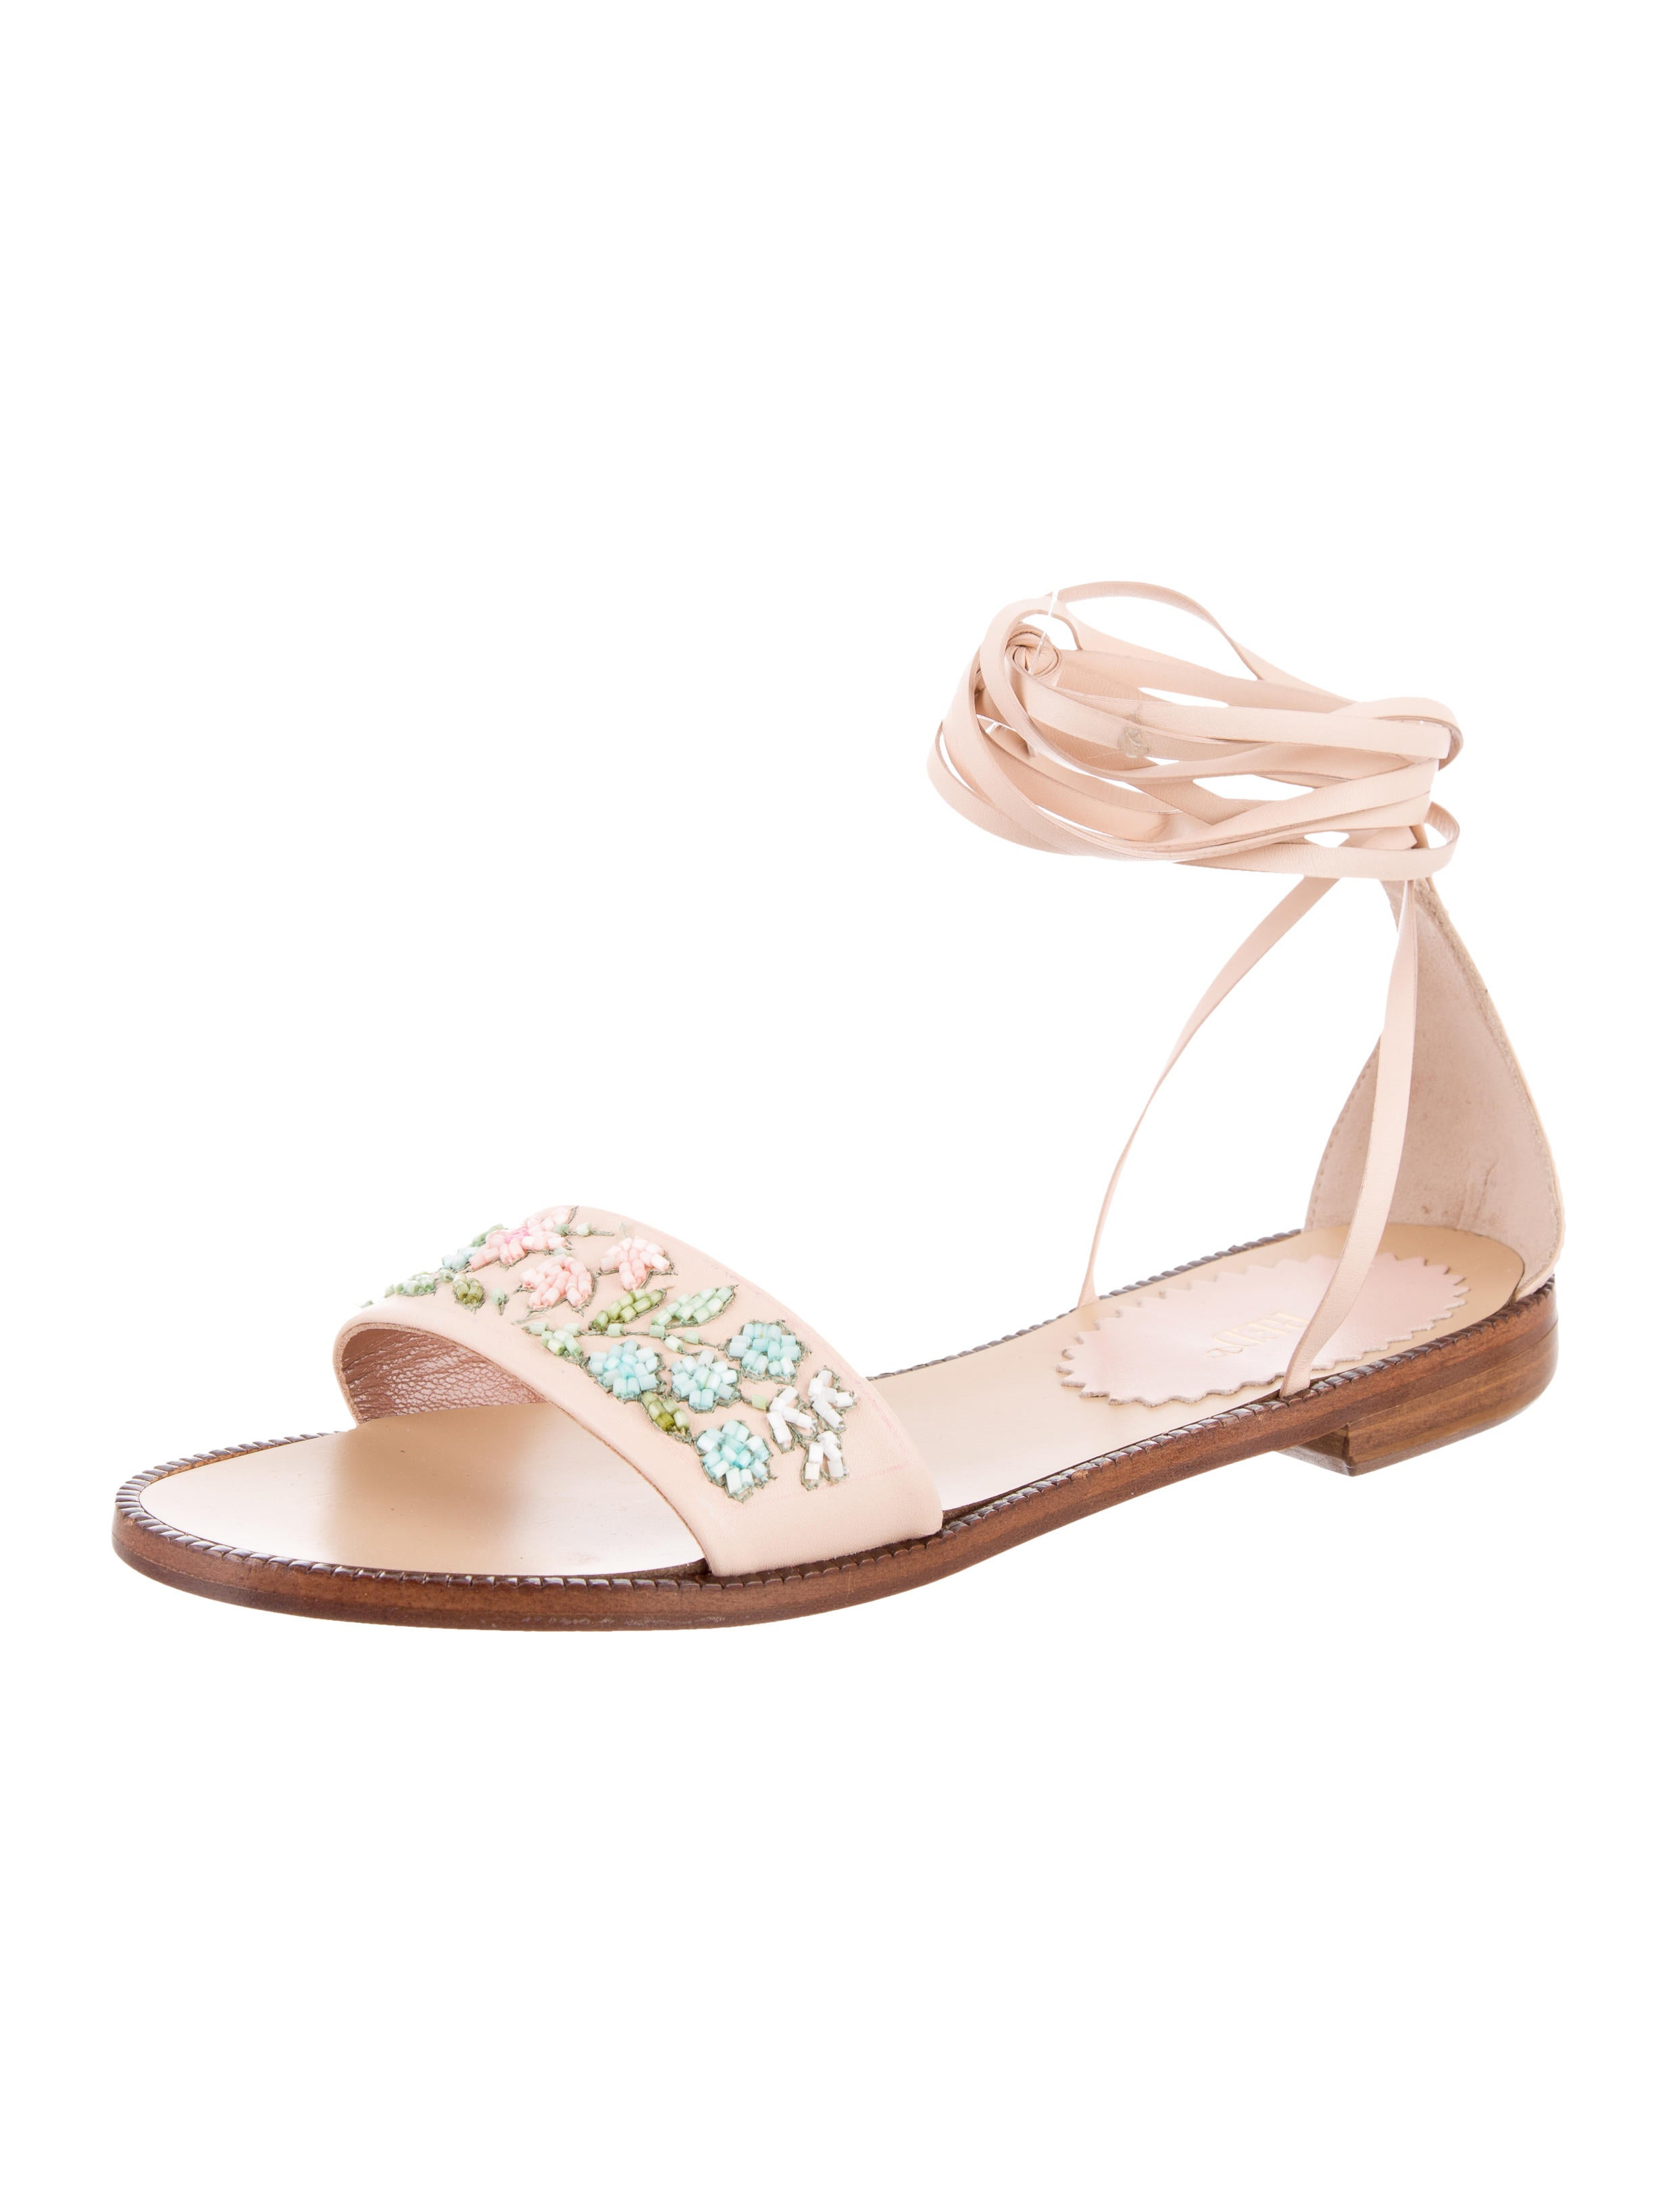 valentino leather beaded sandals shoes wre28328